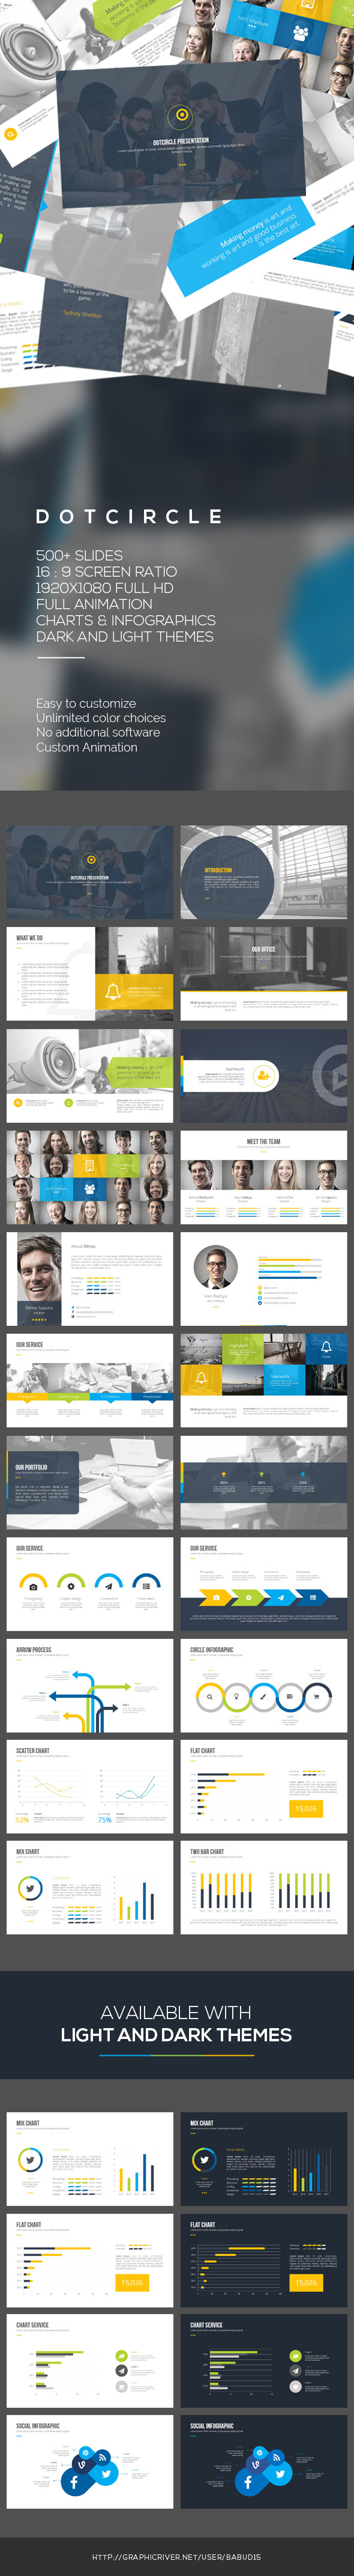 Dotcircle PowerPoint Template (PowerPoint Templates)